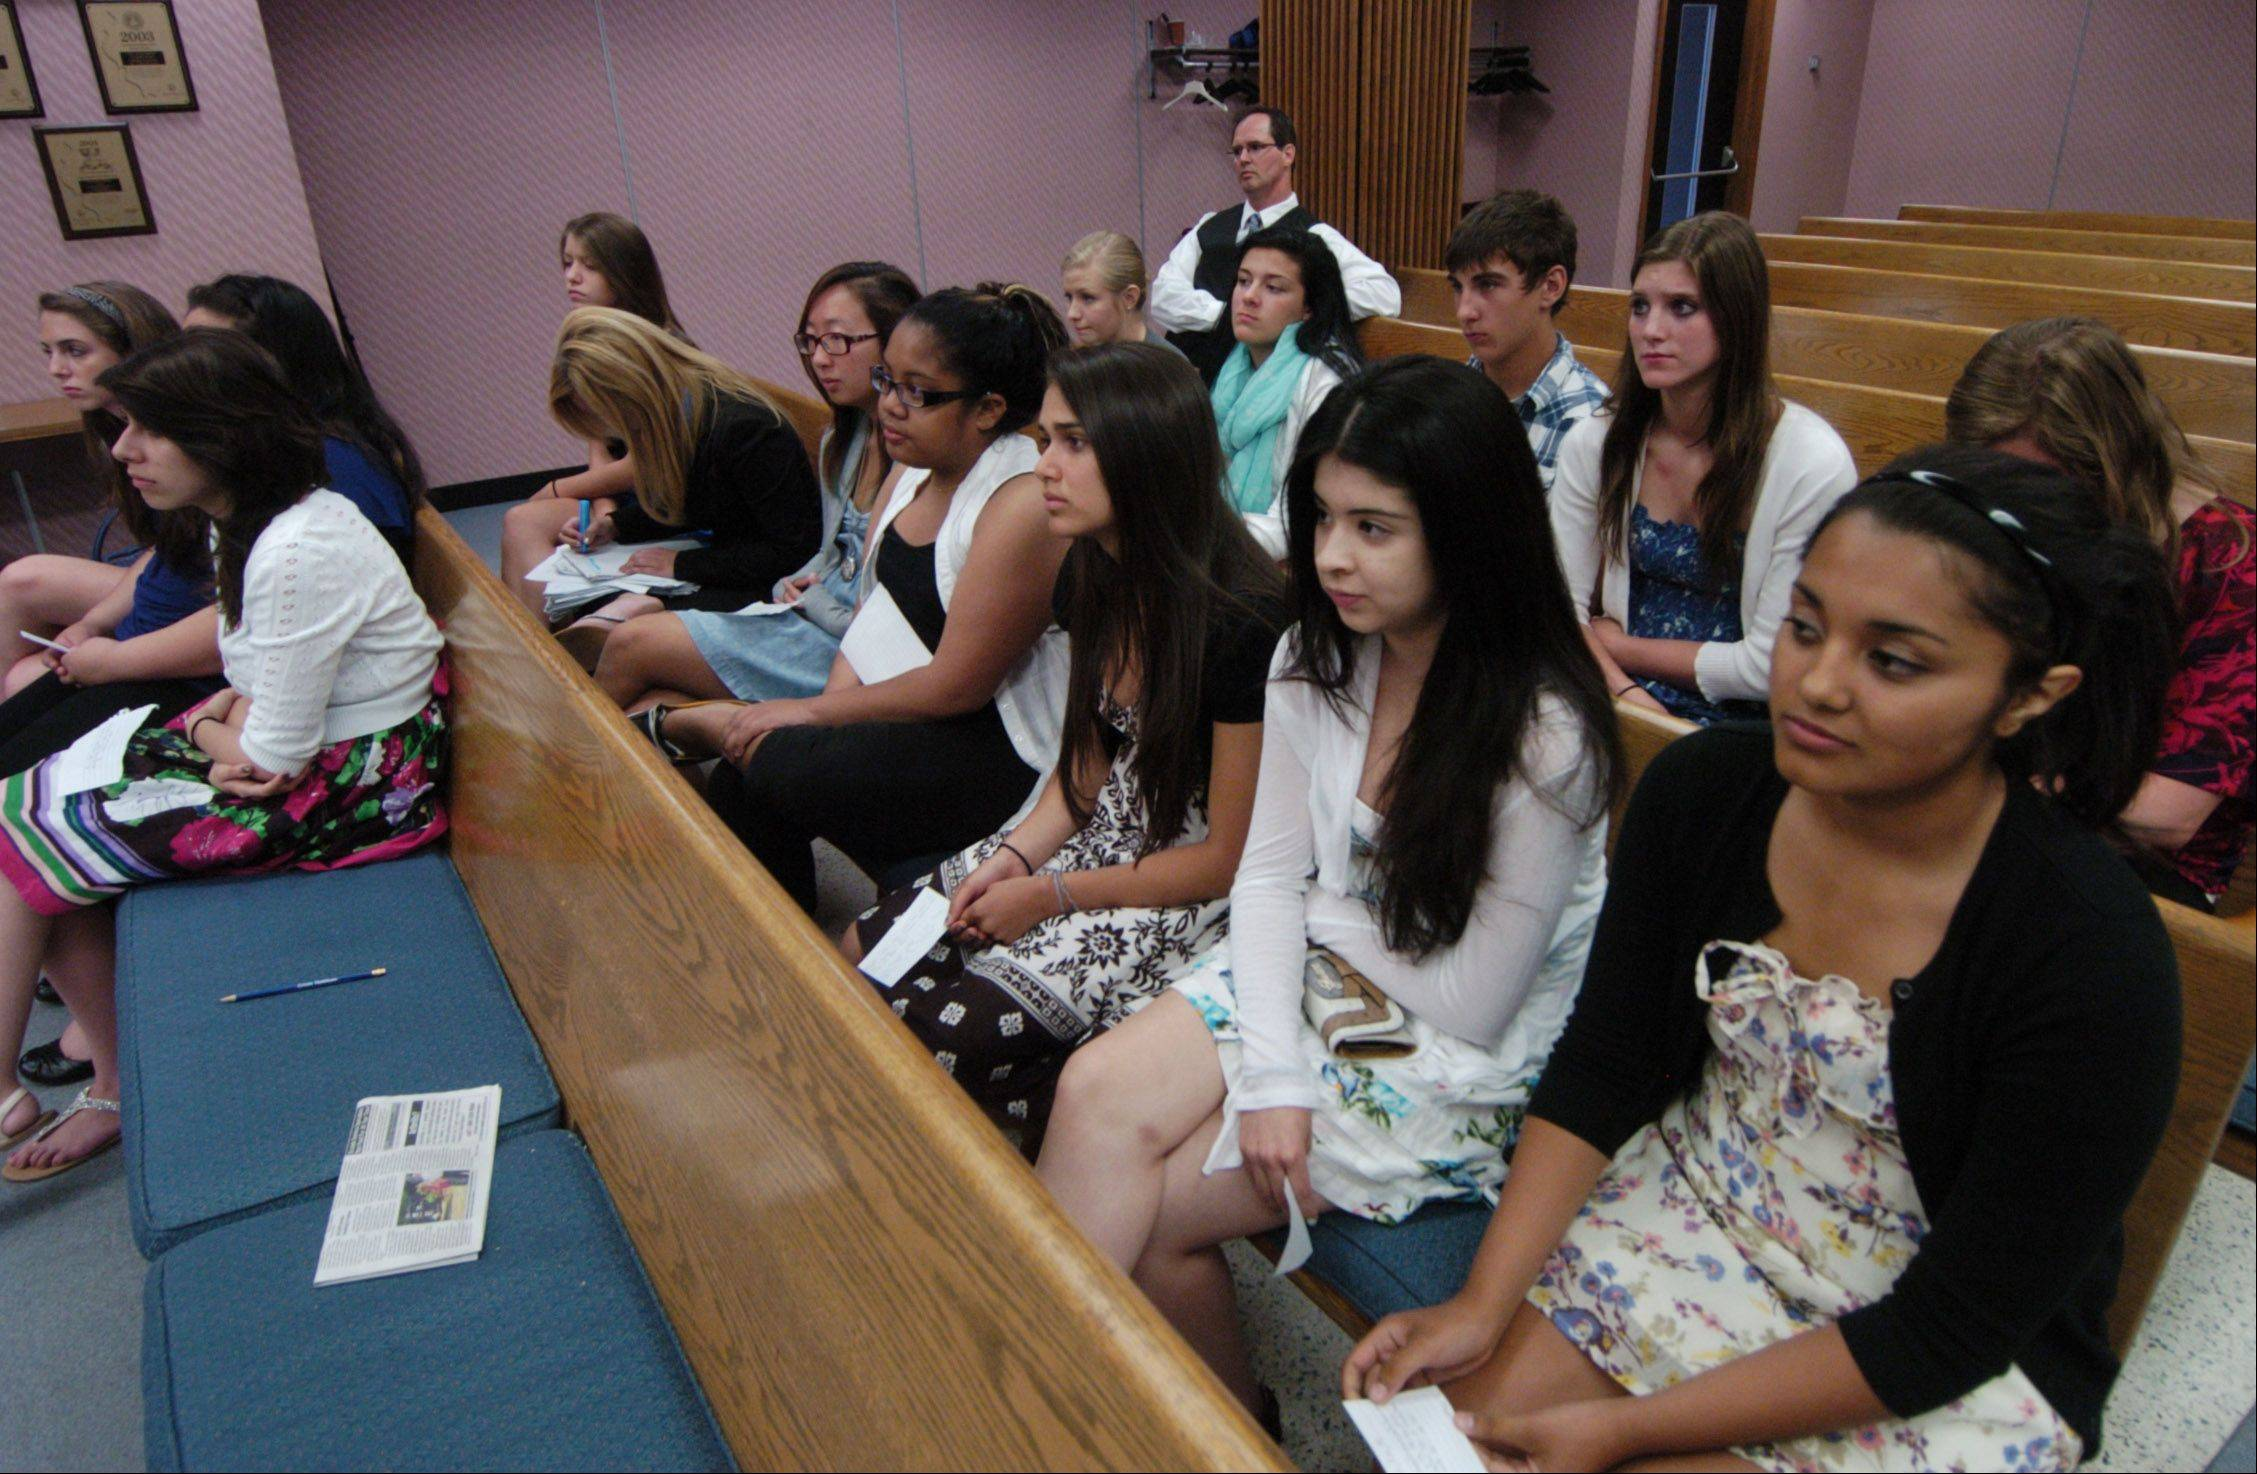 Jessica Vasquez, right, and Brenda Gomez, seated next to her, wait their turn as Maine West High School students ask questions of Des Plaines administrators during a news conference being televised live on the city cable channel.